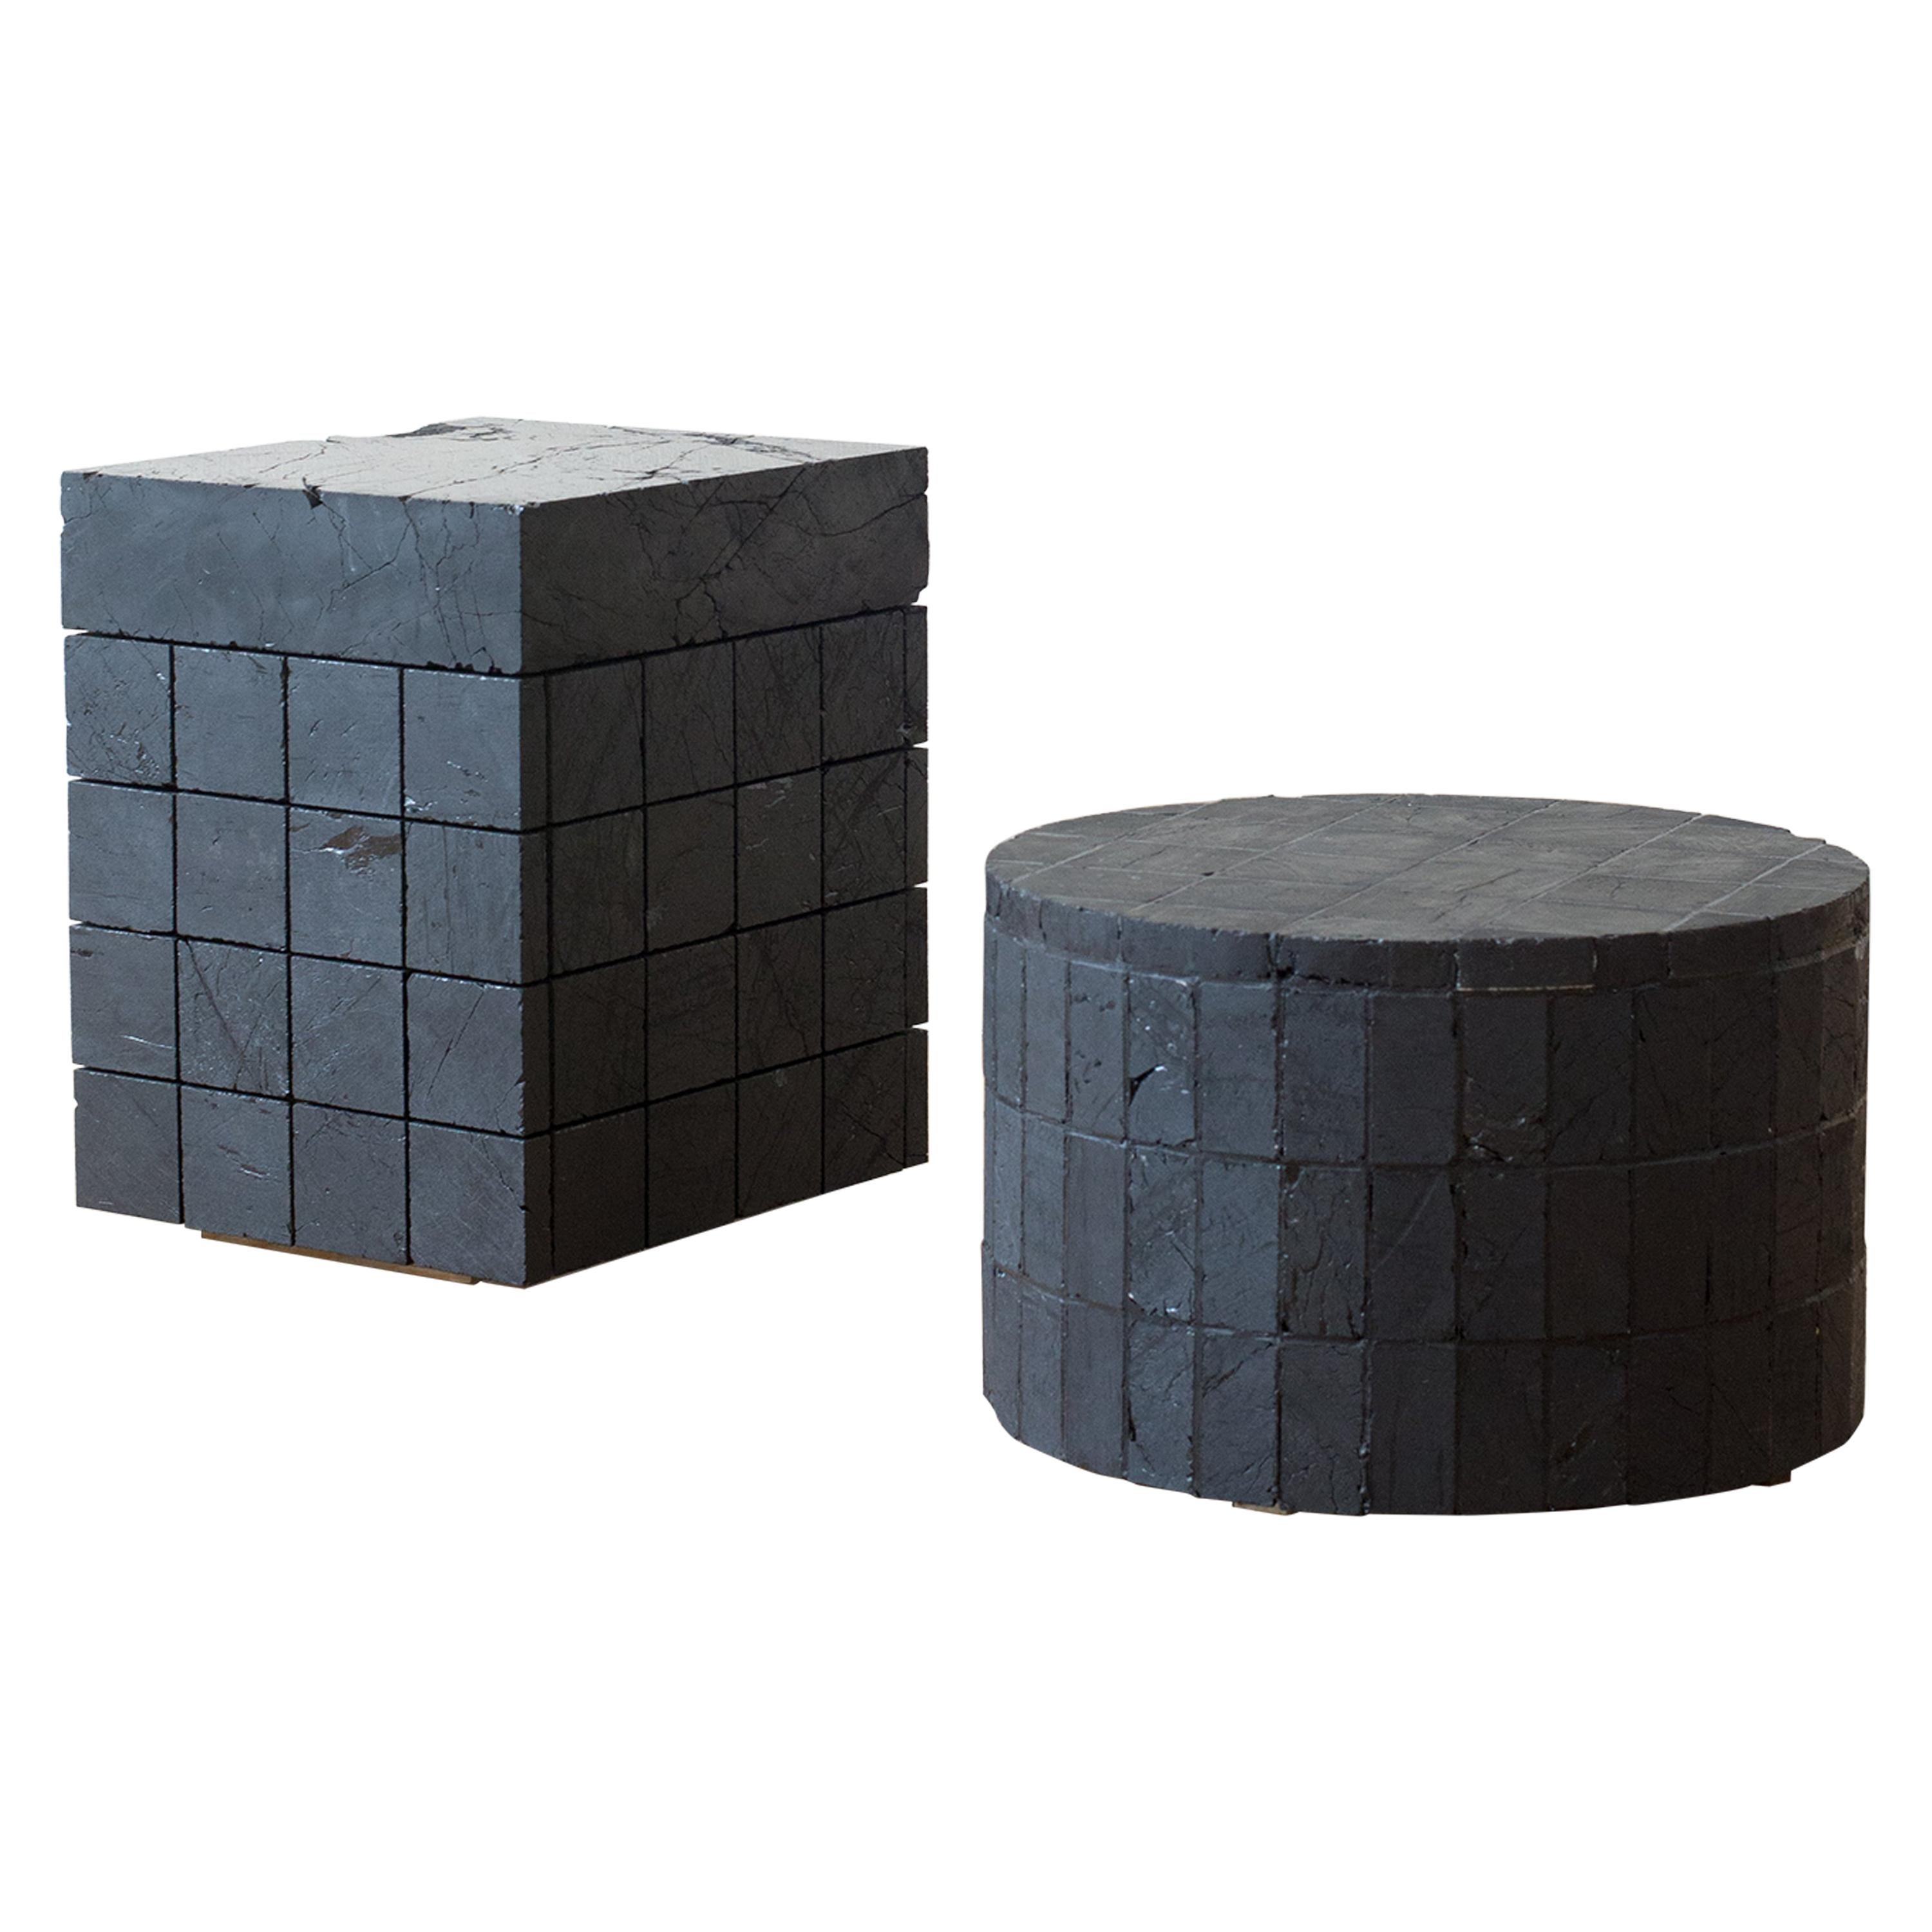 Anthracite Coal Low Table 'round' Contemporary Table by Jesper Eriksson